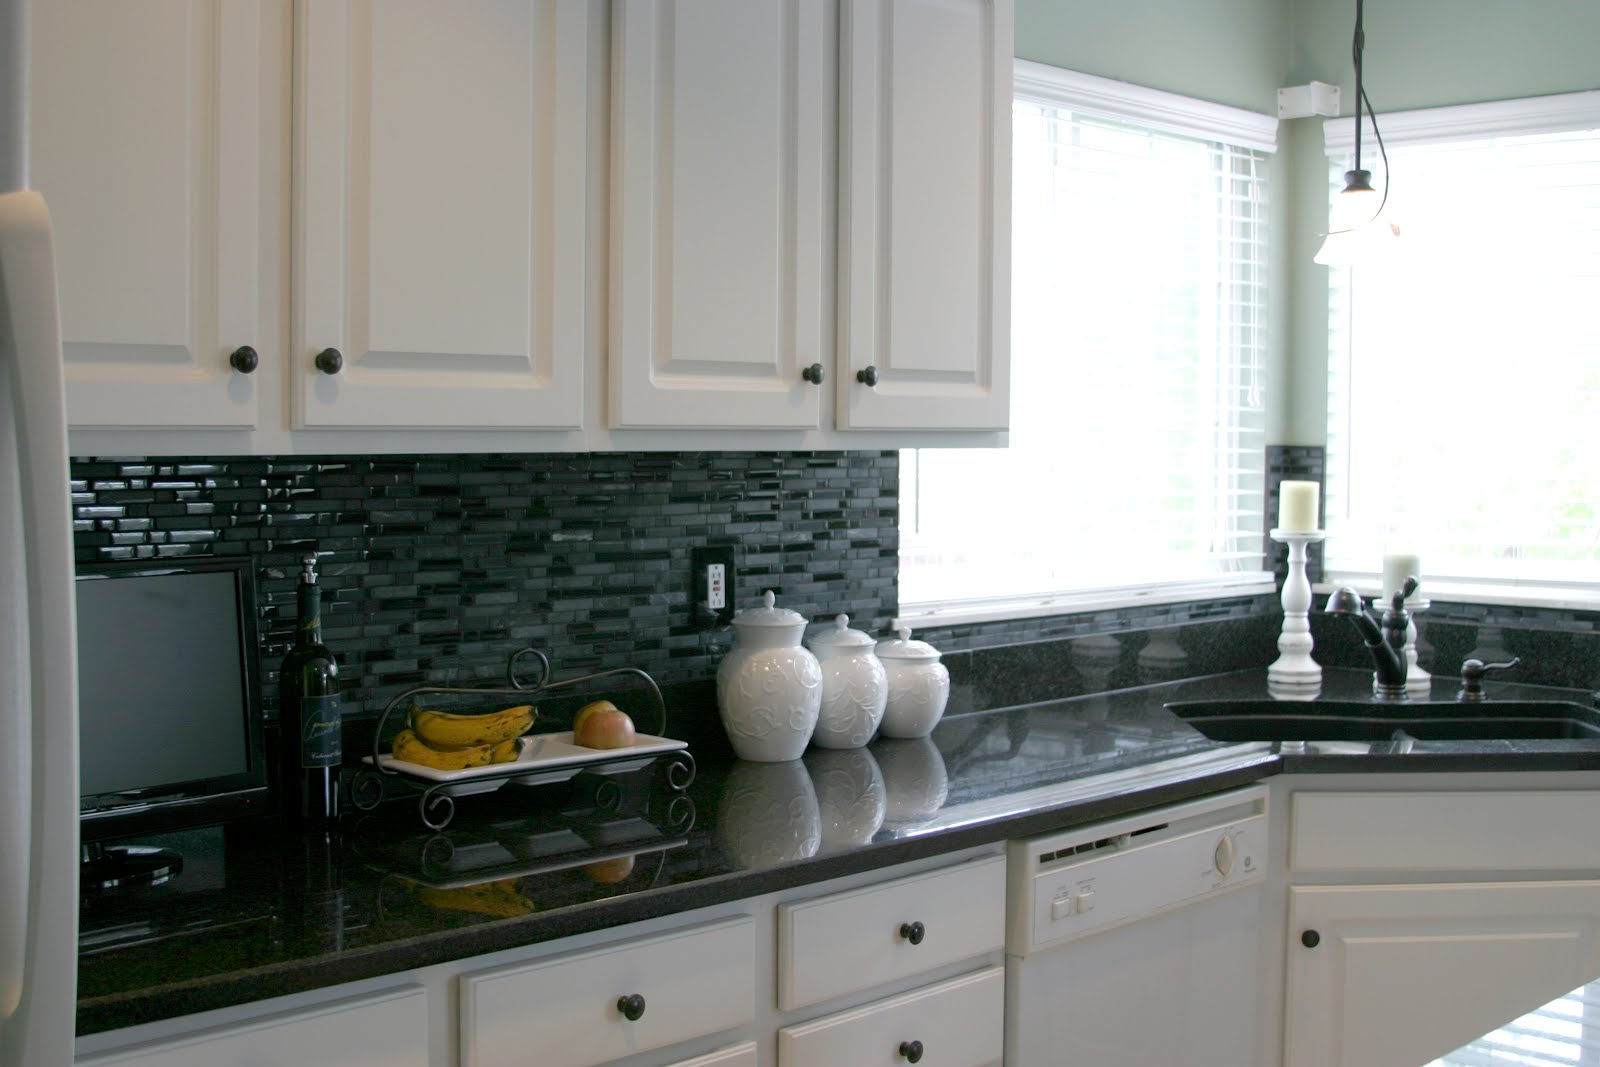 J & J Remodeling Service: The Latest in High-end Tile ...